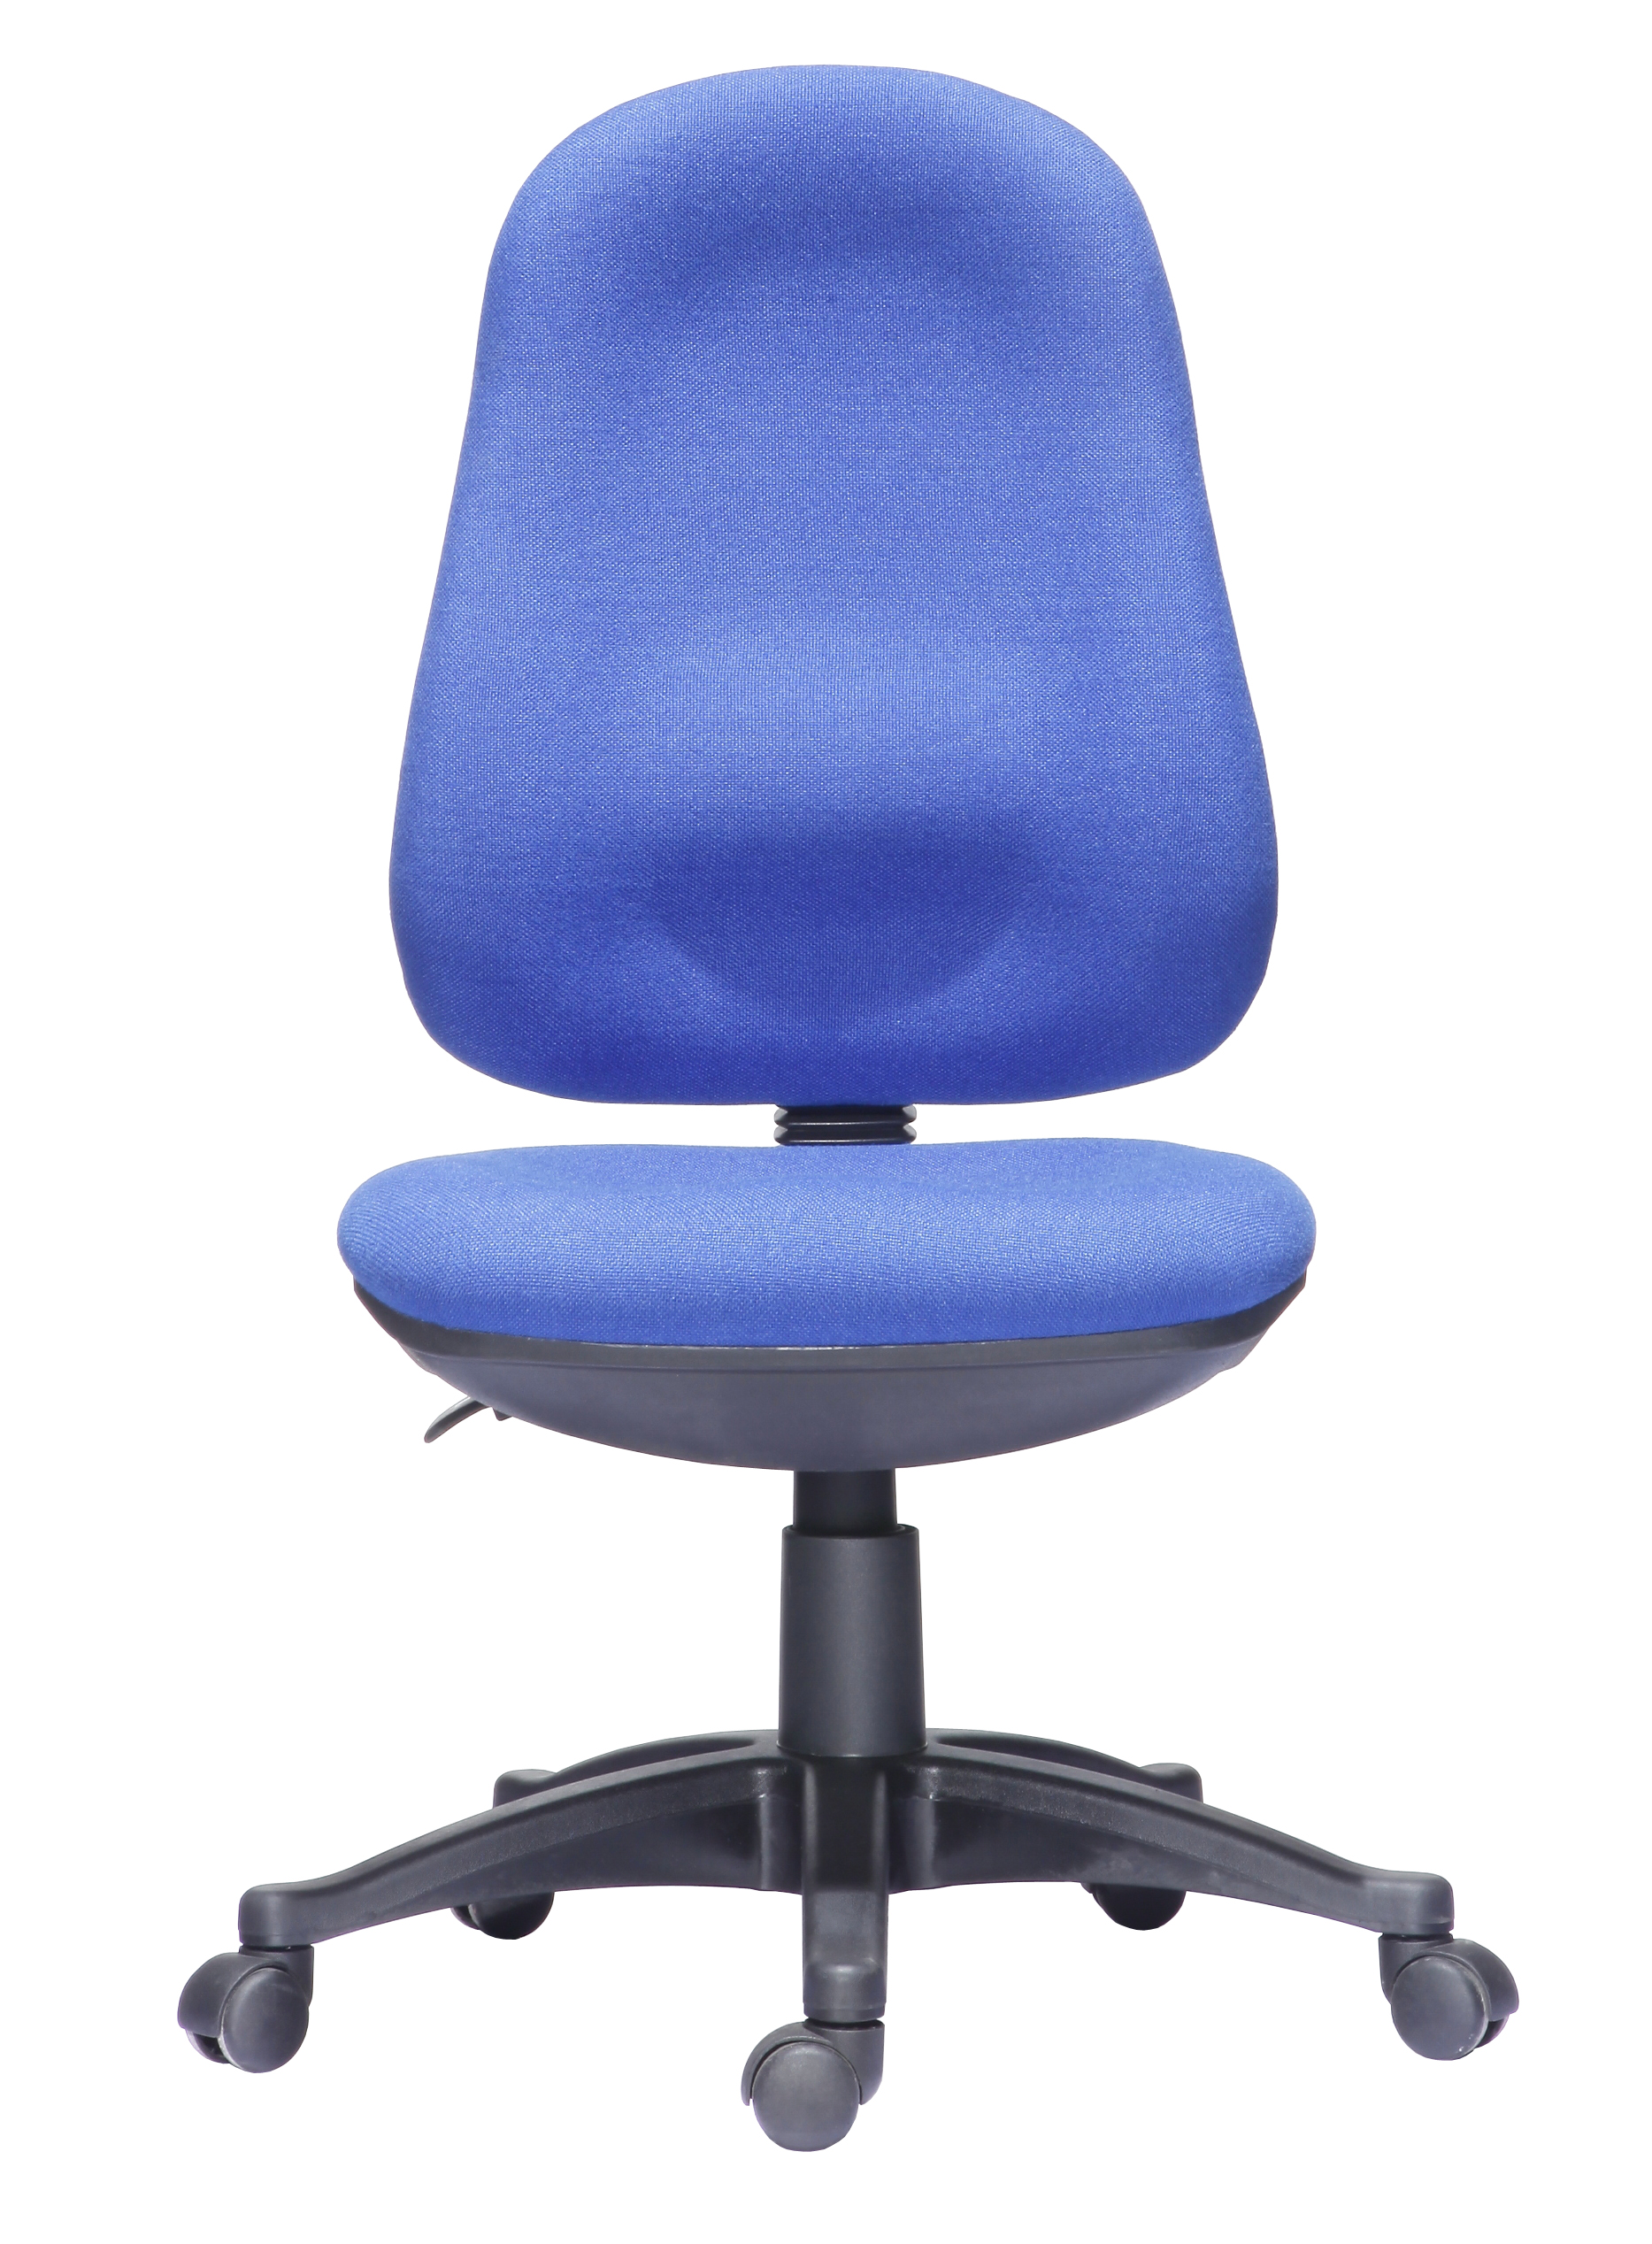 office chairs with back support uk rocking adirondack plans operator furniture solutions 4u